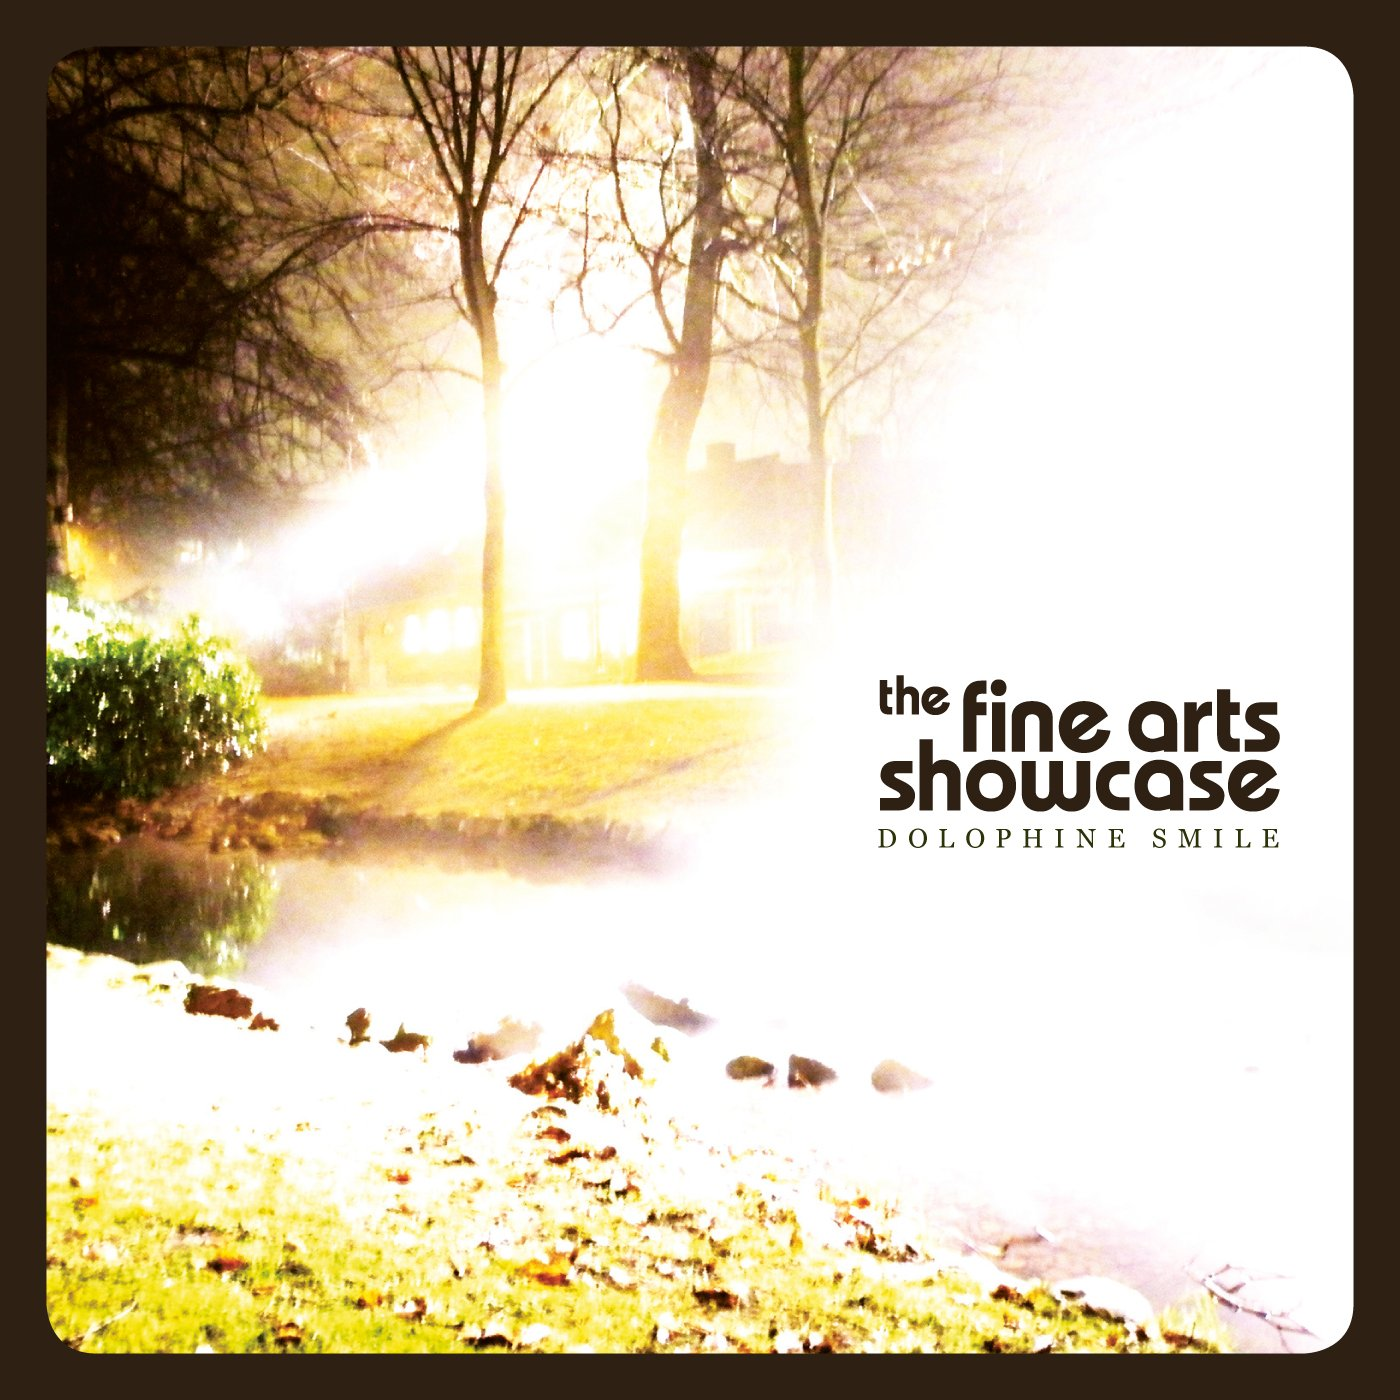 The Fine Arts Showcase - Dolophine Smile (CD)